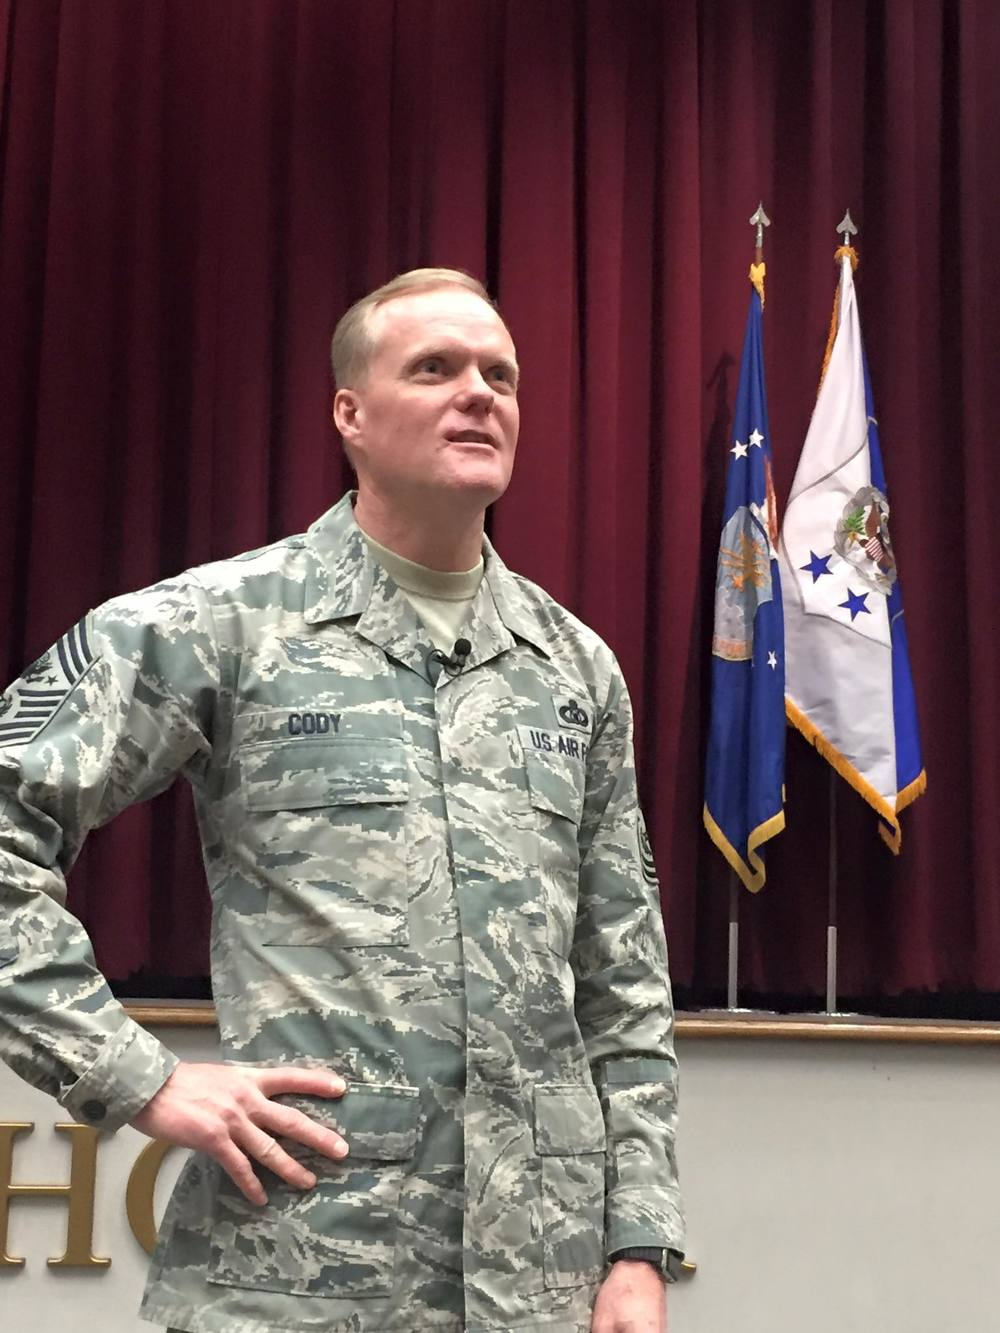 CMSAF Cody speaking for class 16-04, Maxwell AFB